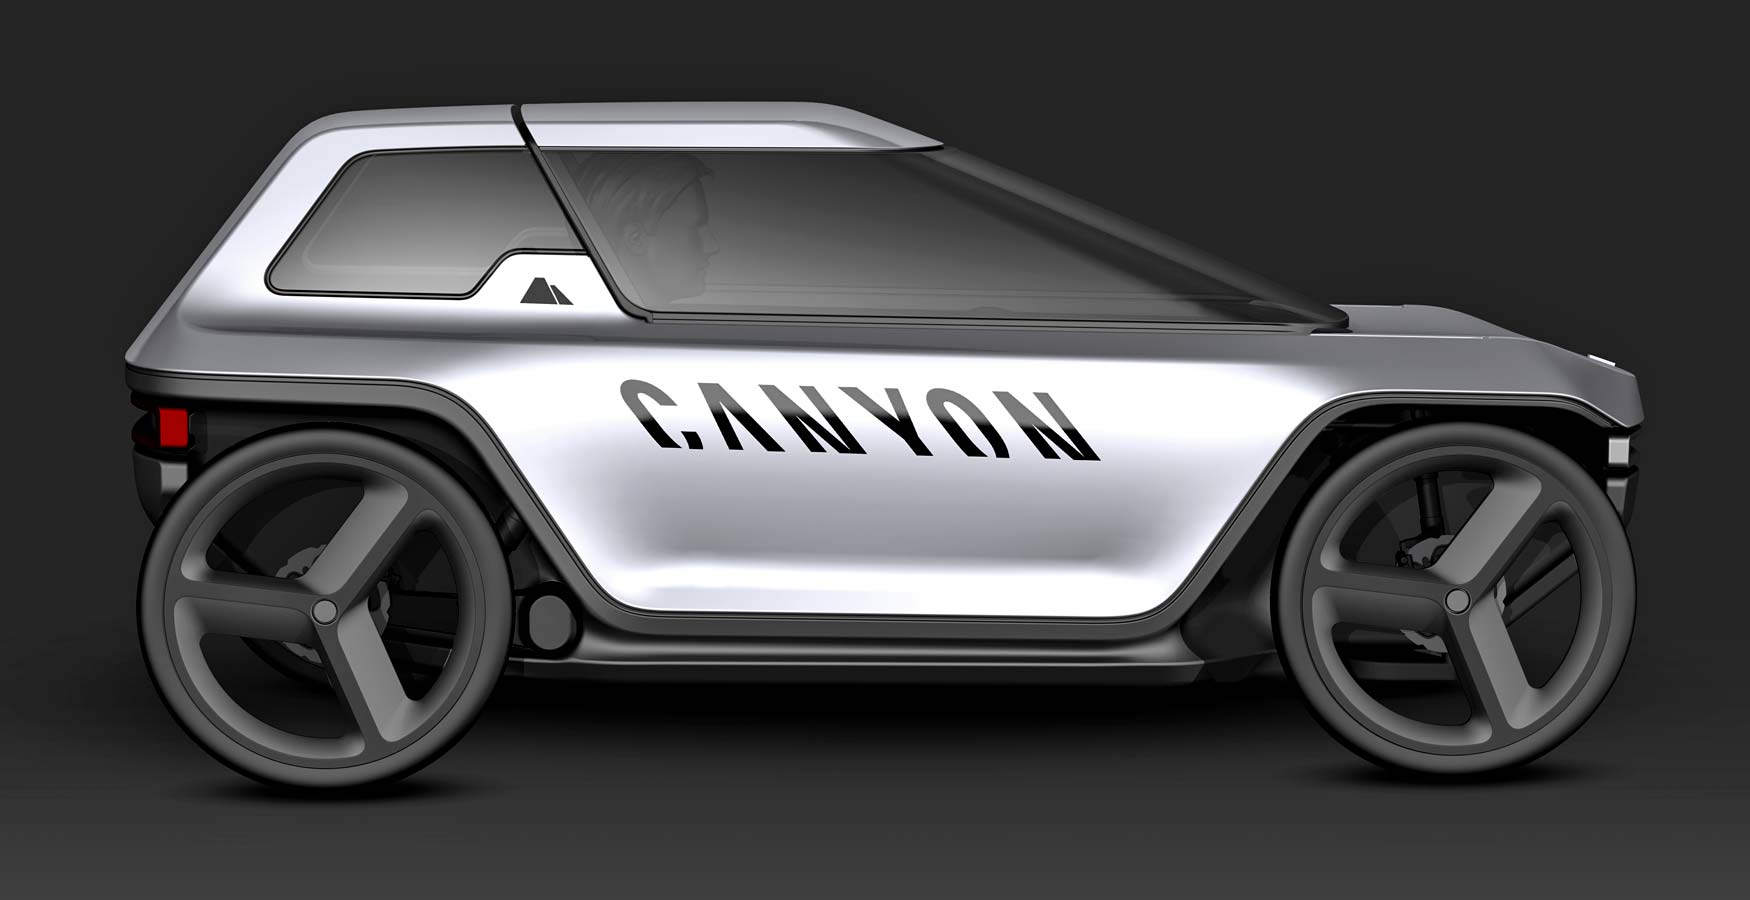 Canyon Future Mobility Concept, electric-assist commuter pedal car, prototype micro car, rendering side